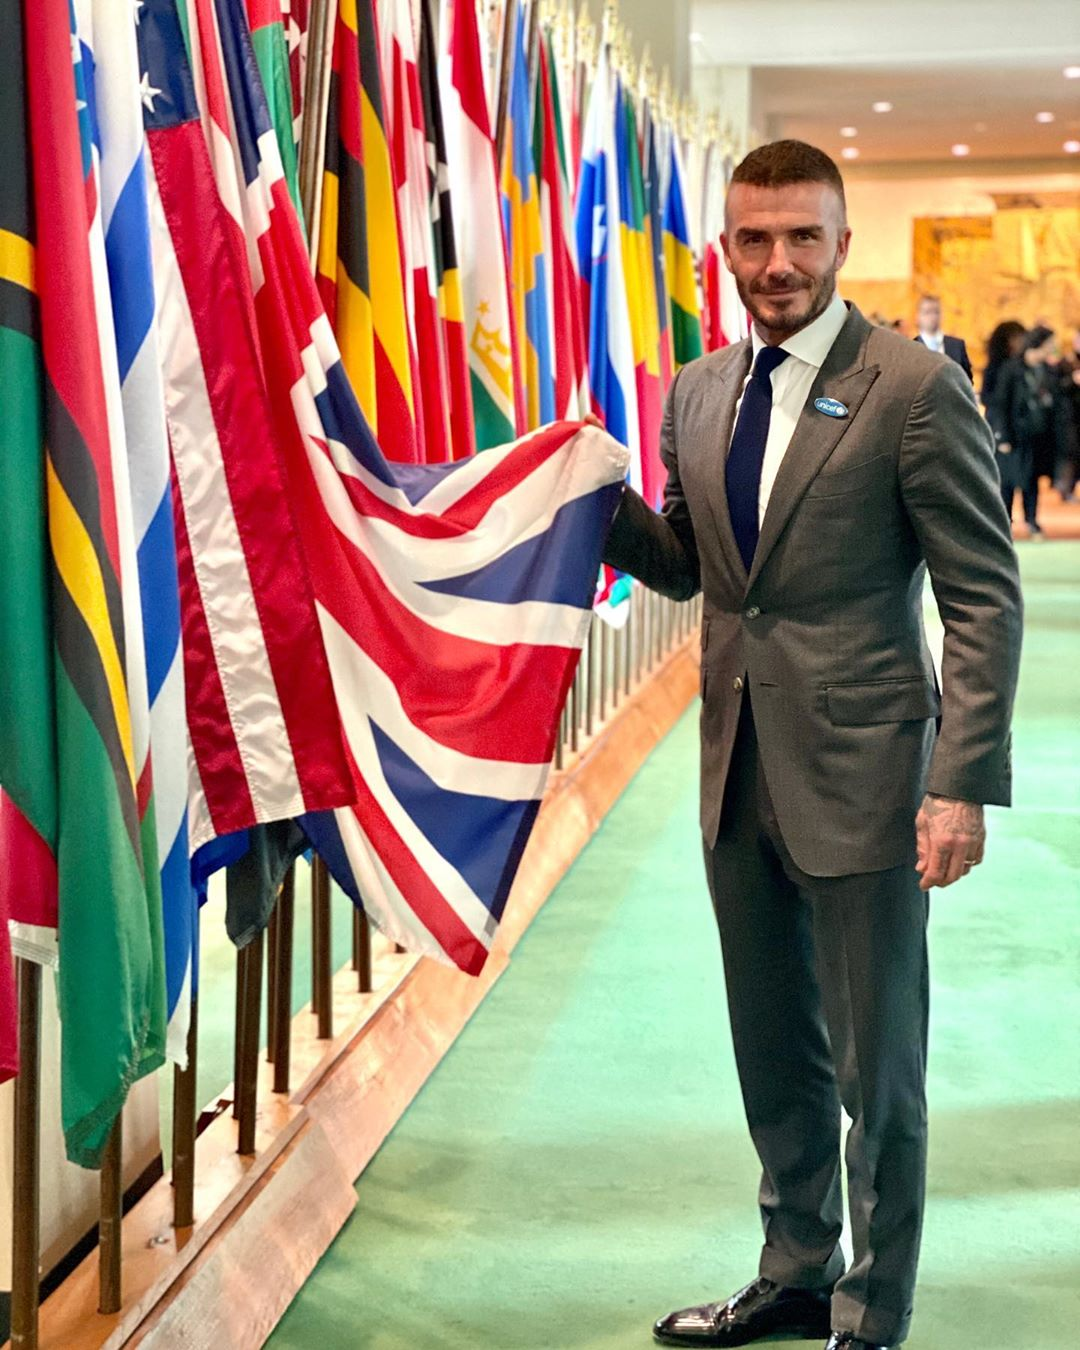 David Beckham Instagram: Today, I am honoured to be in New York with  to mark World Children's Day. I had...